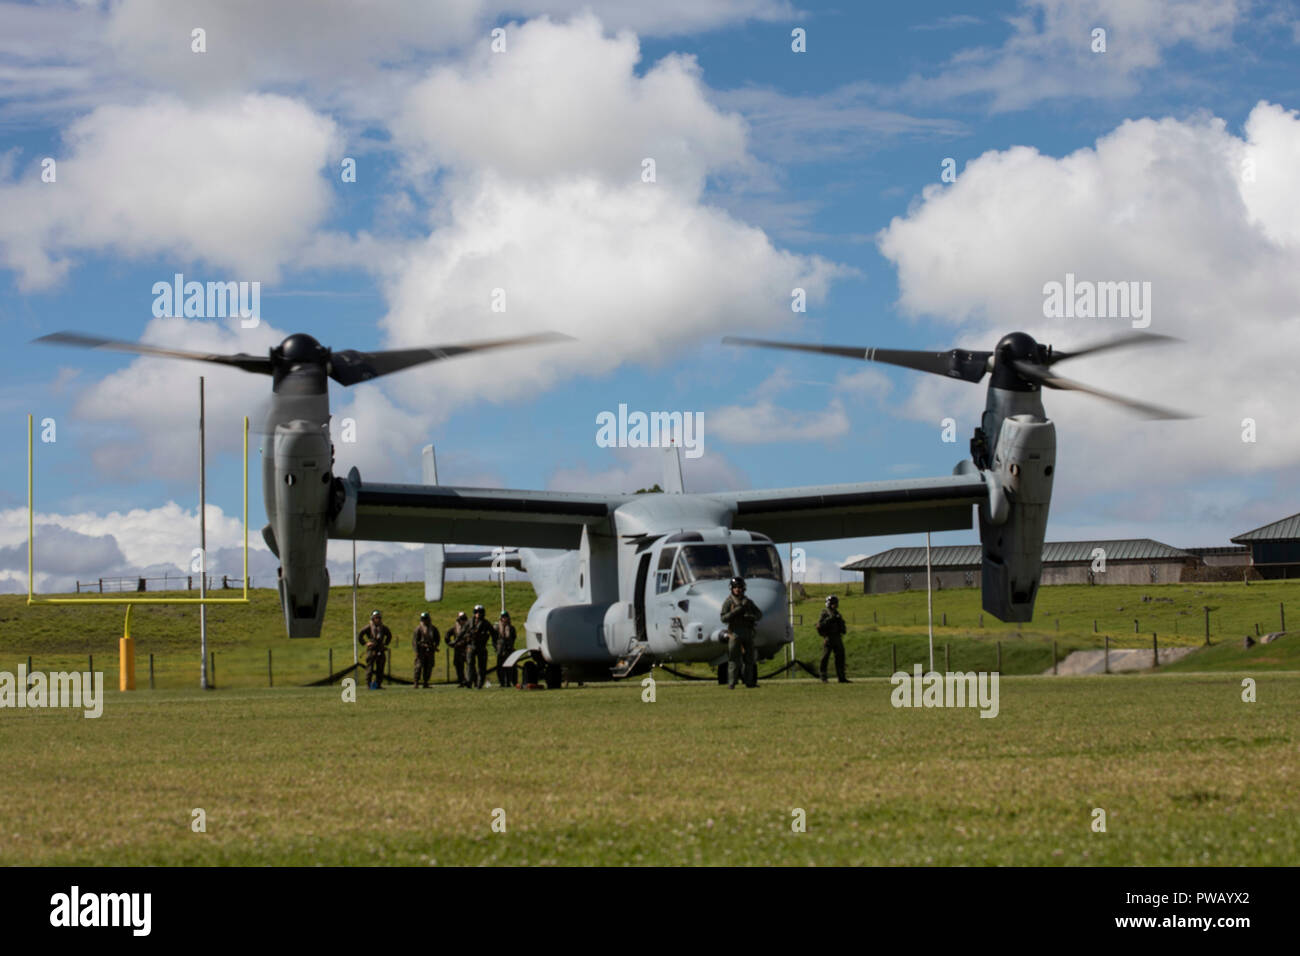 U.S. Marines with Marine Medium Tiltrotor Squadron 363 (VMM-363), arrive at the Waimea District Park arrive a day prior of the Waimea Fall Festival to set up a static display of one of their MV-22B Osprey, Oct. 12, 2018. VMM-363, nicknamed the Lucky Red Lions, flew one of their aircraft from Marine Corps Base Hawaii on Oahu to the Waimea Fall Festival, providing a static display and subject matter experts for a first-hand experience to the festival's attendants. The squadron arrived to Hawaii earlier this year increasing the combat capability and crisis response within the Indo-Pacific region. Stock Photo